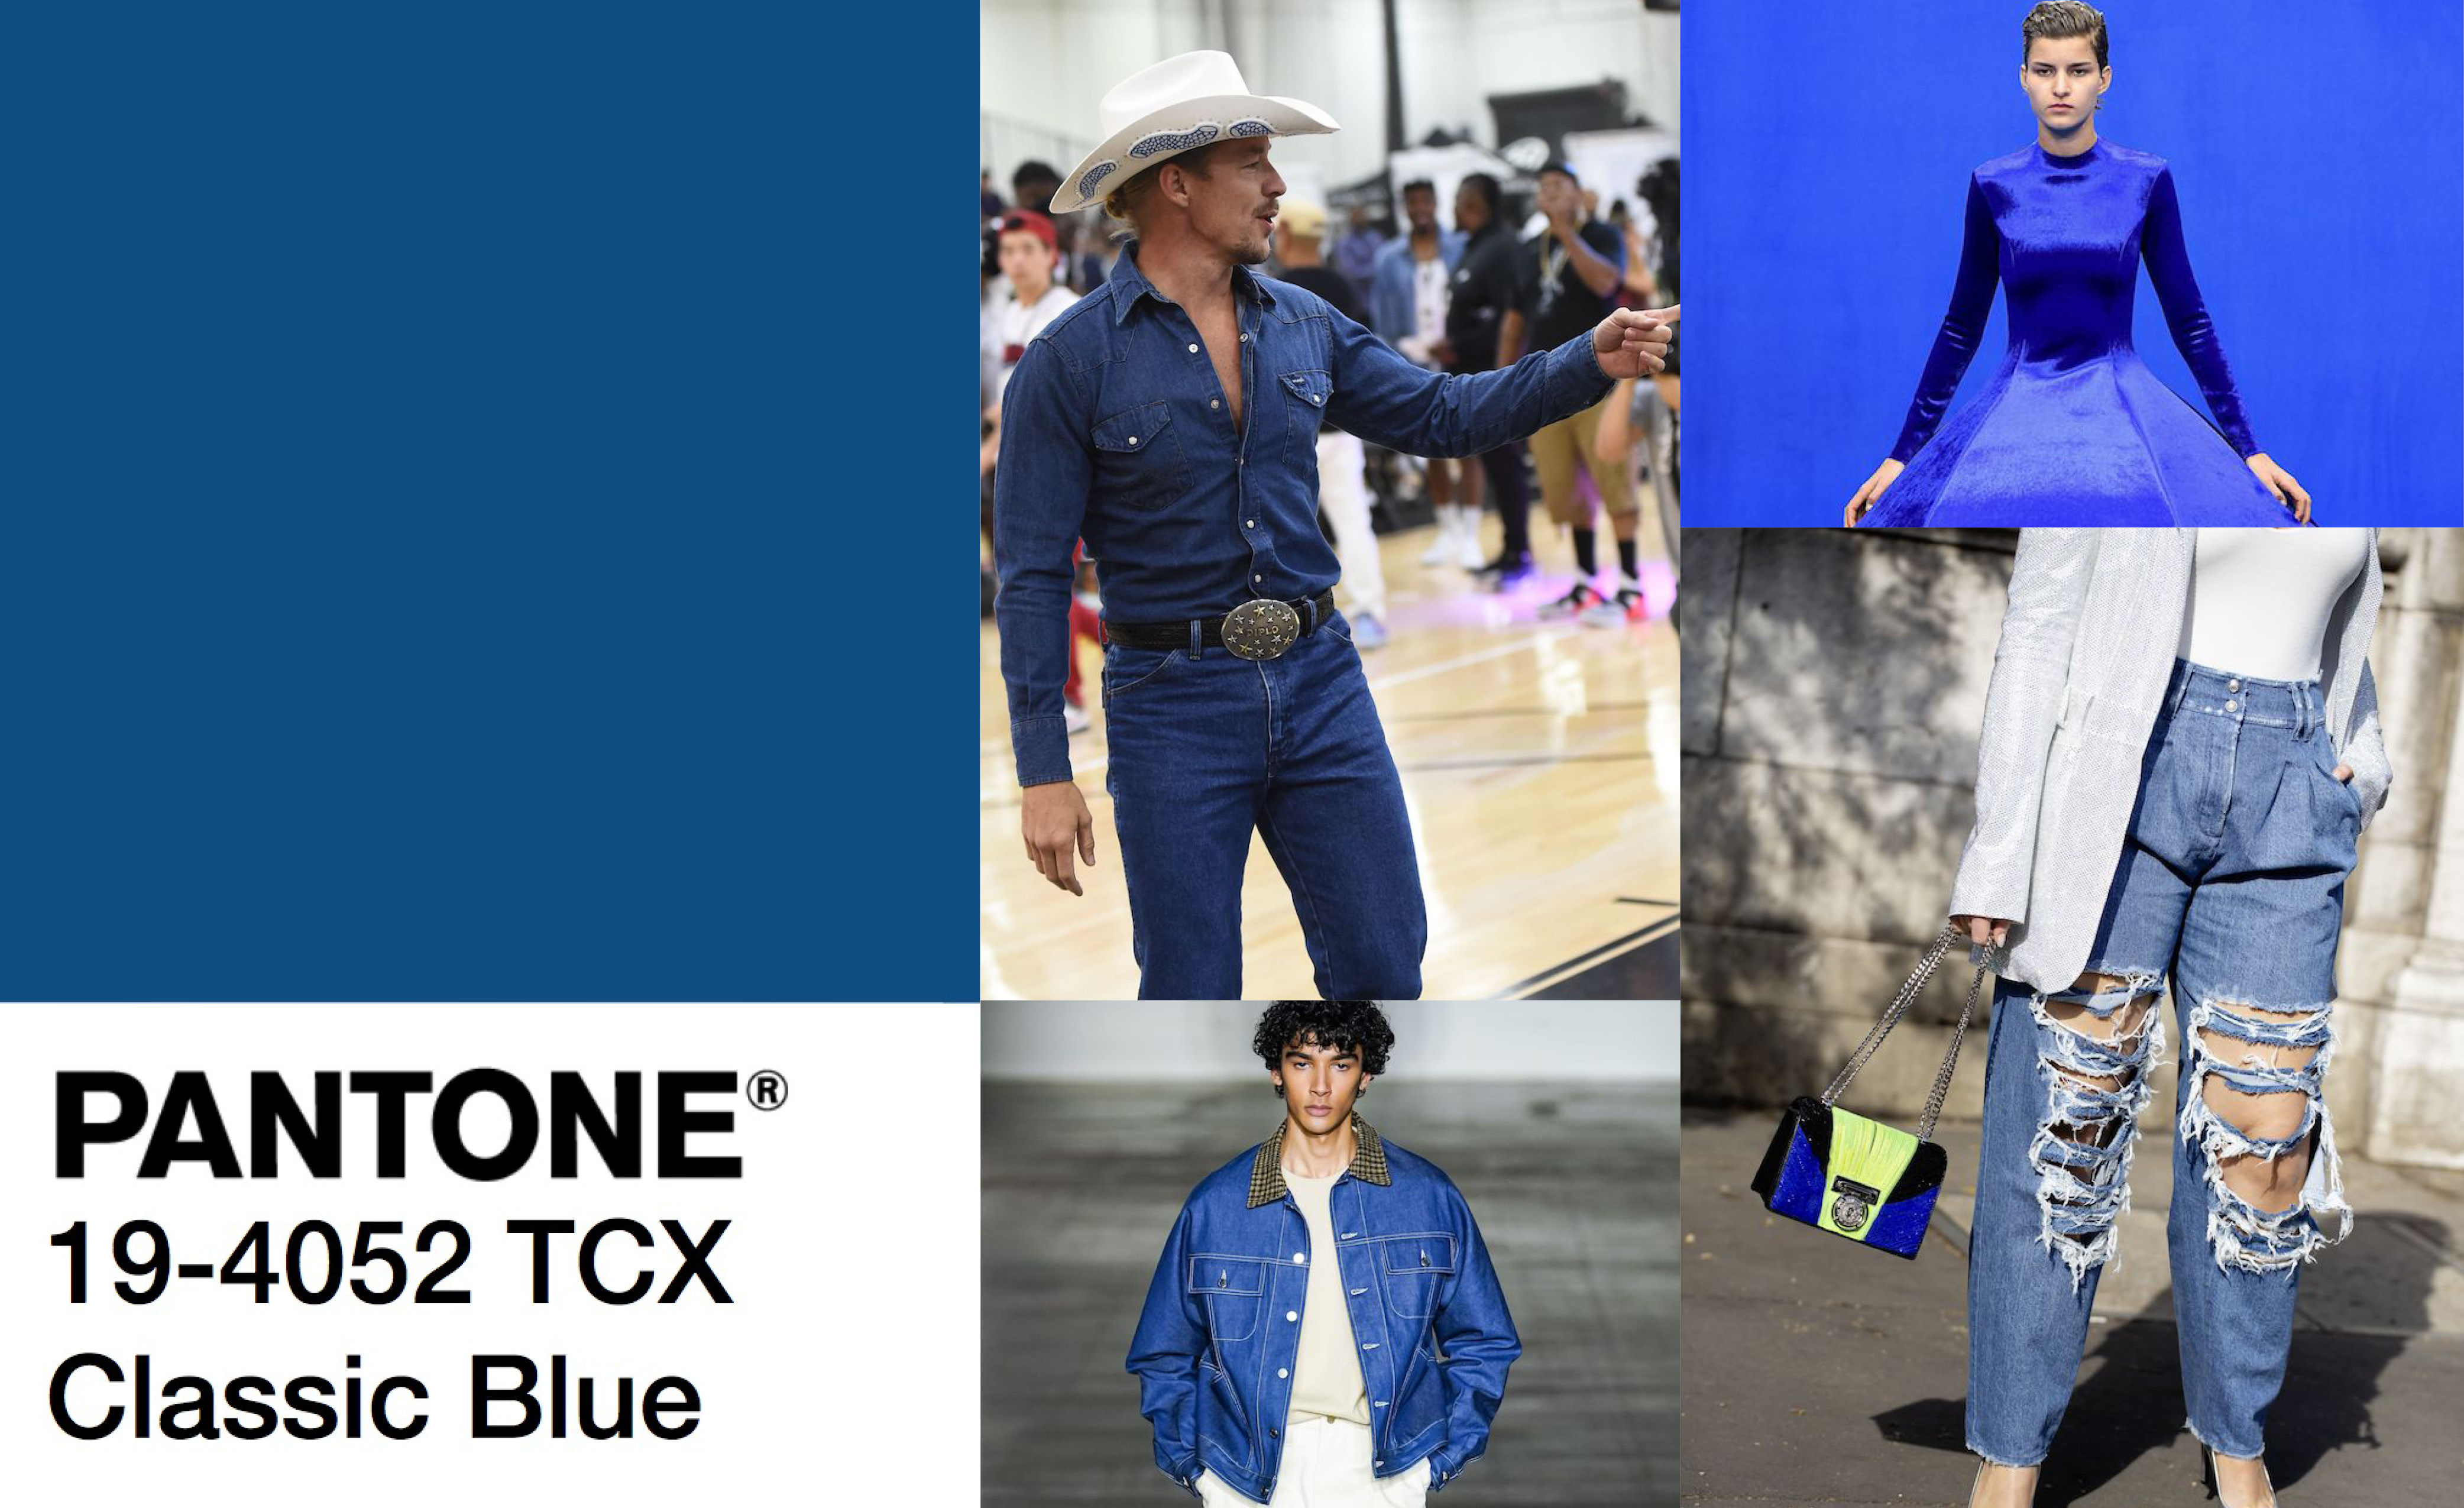 Classic Blue heats up fashion in 2020.